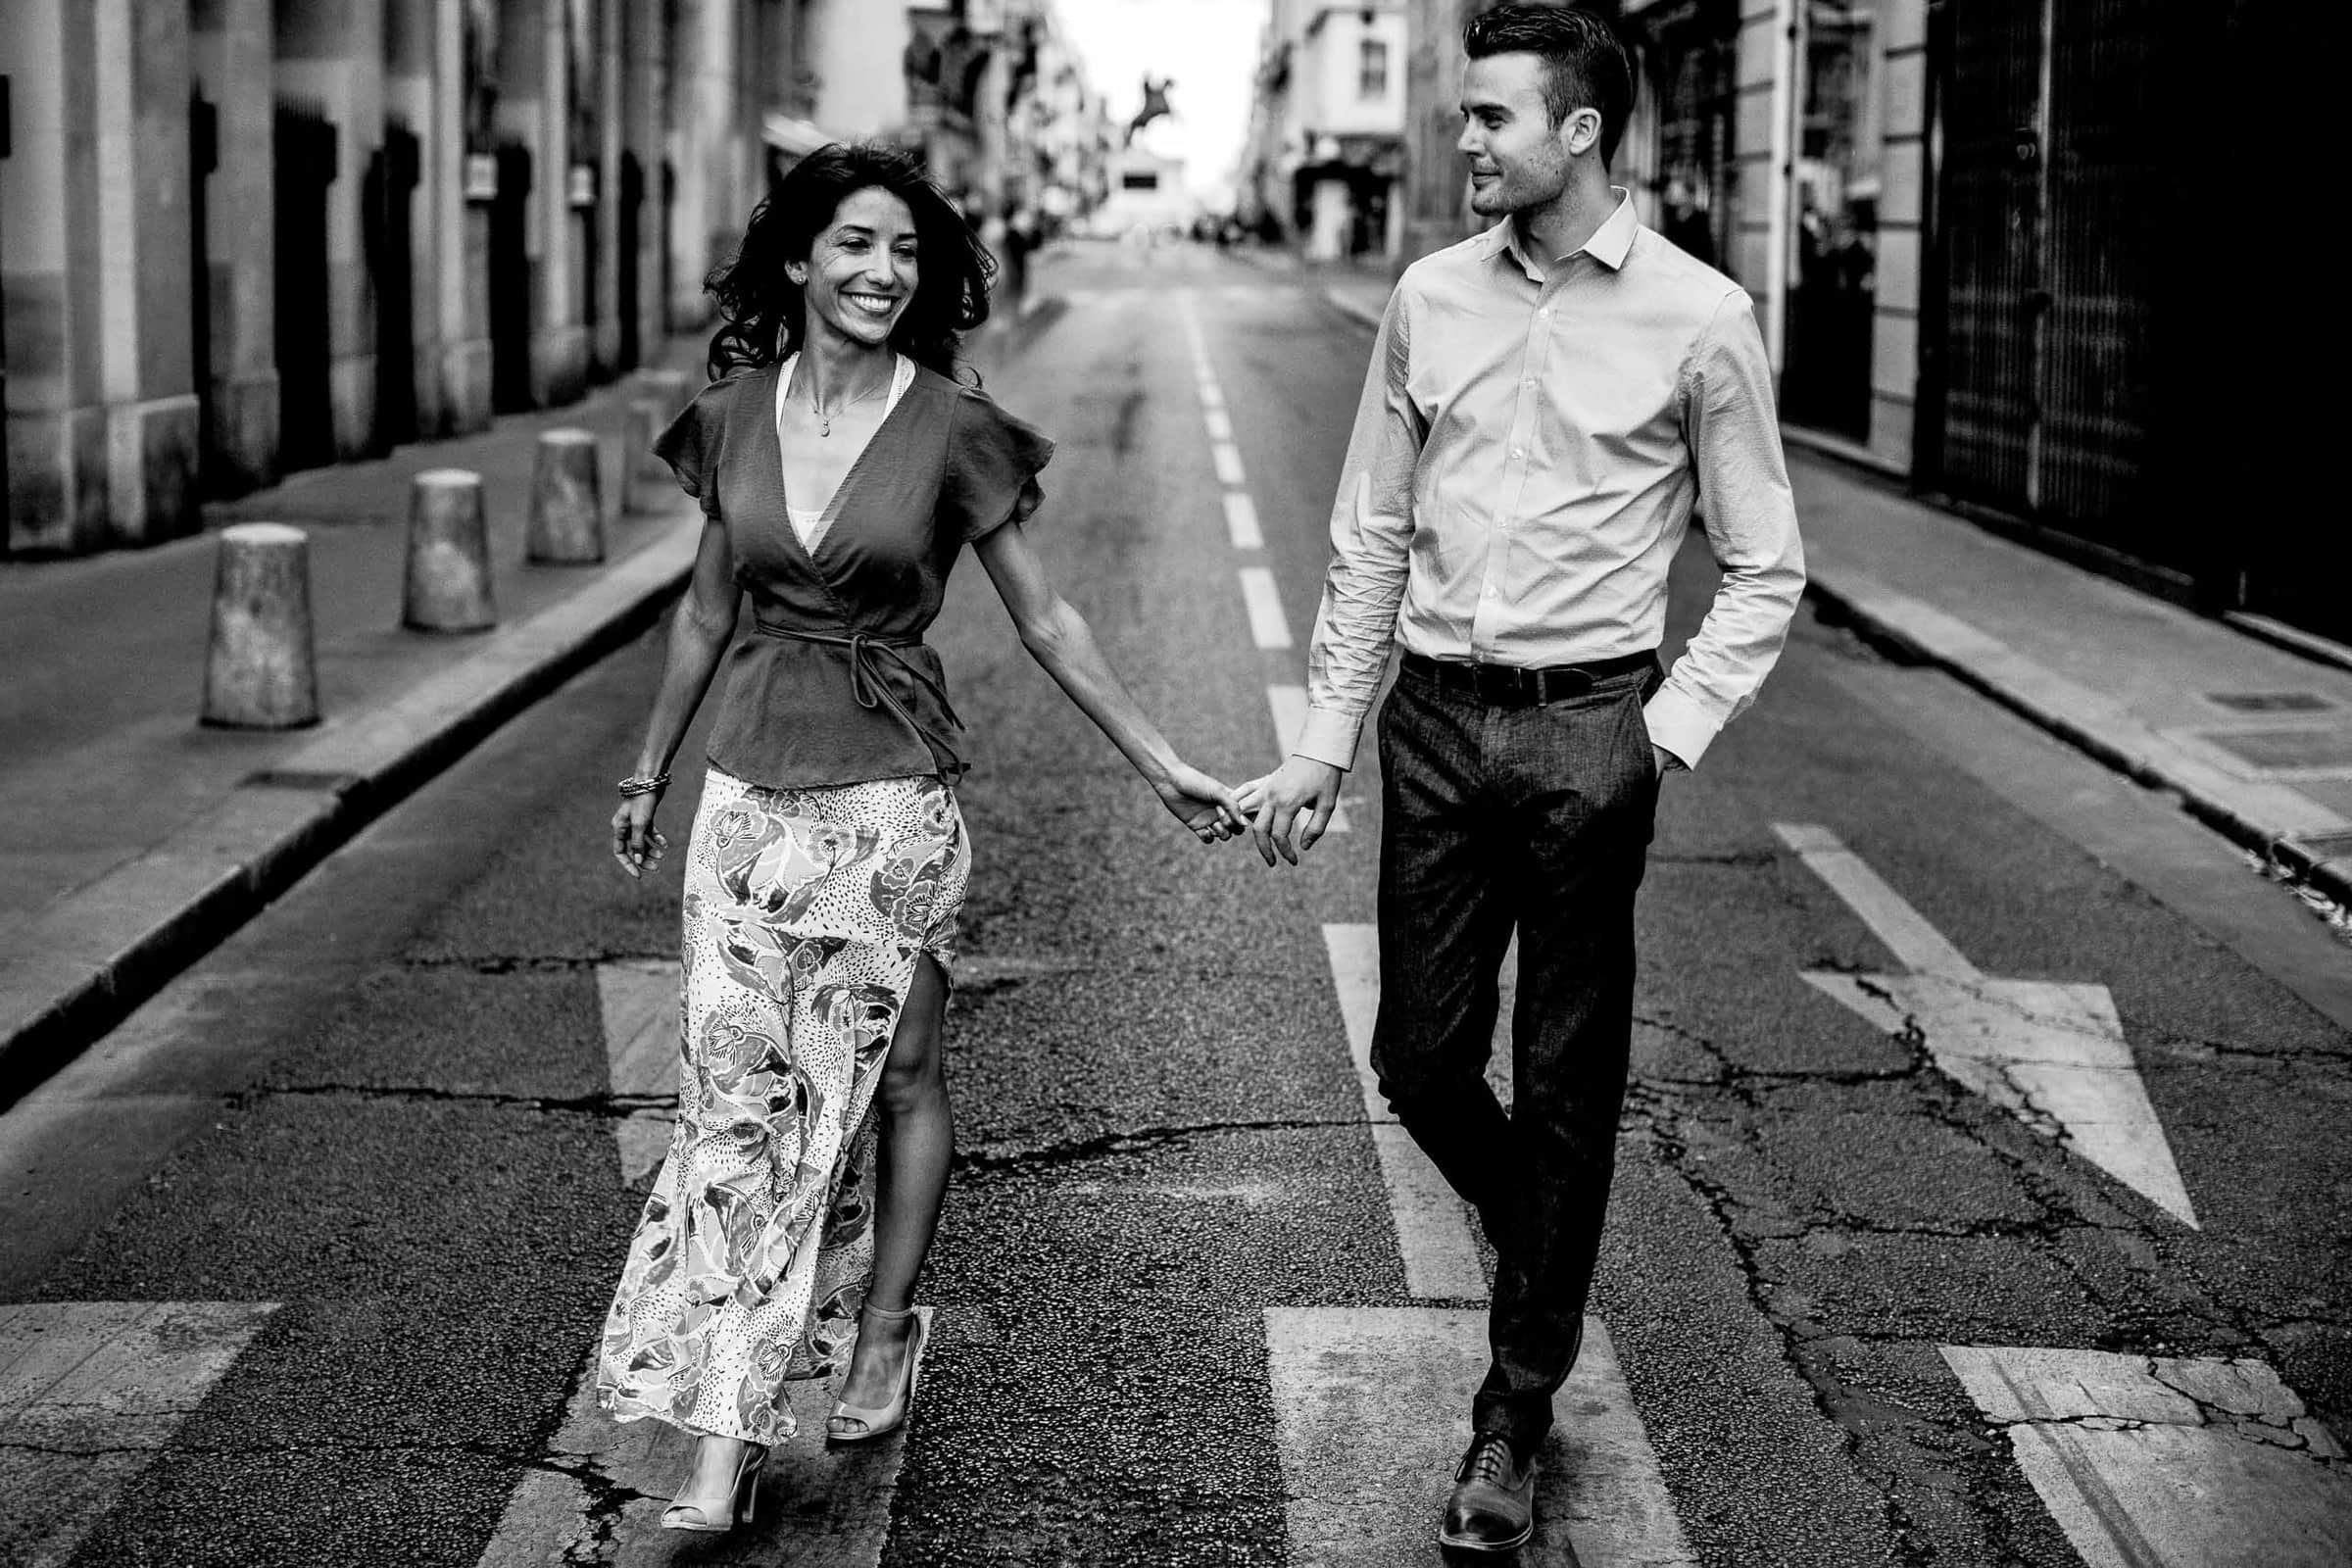 A creative portrait of a couple walking hand and hand in the back streets during their Paris engagement photo session